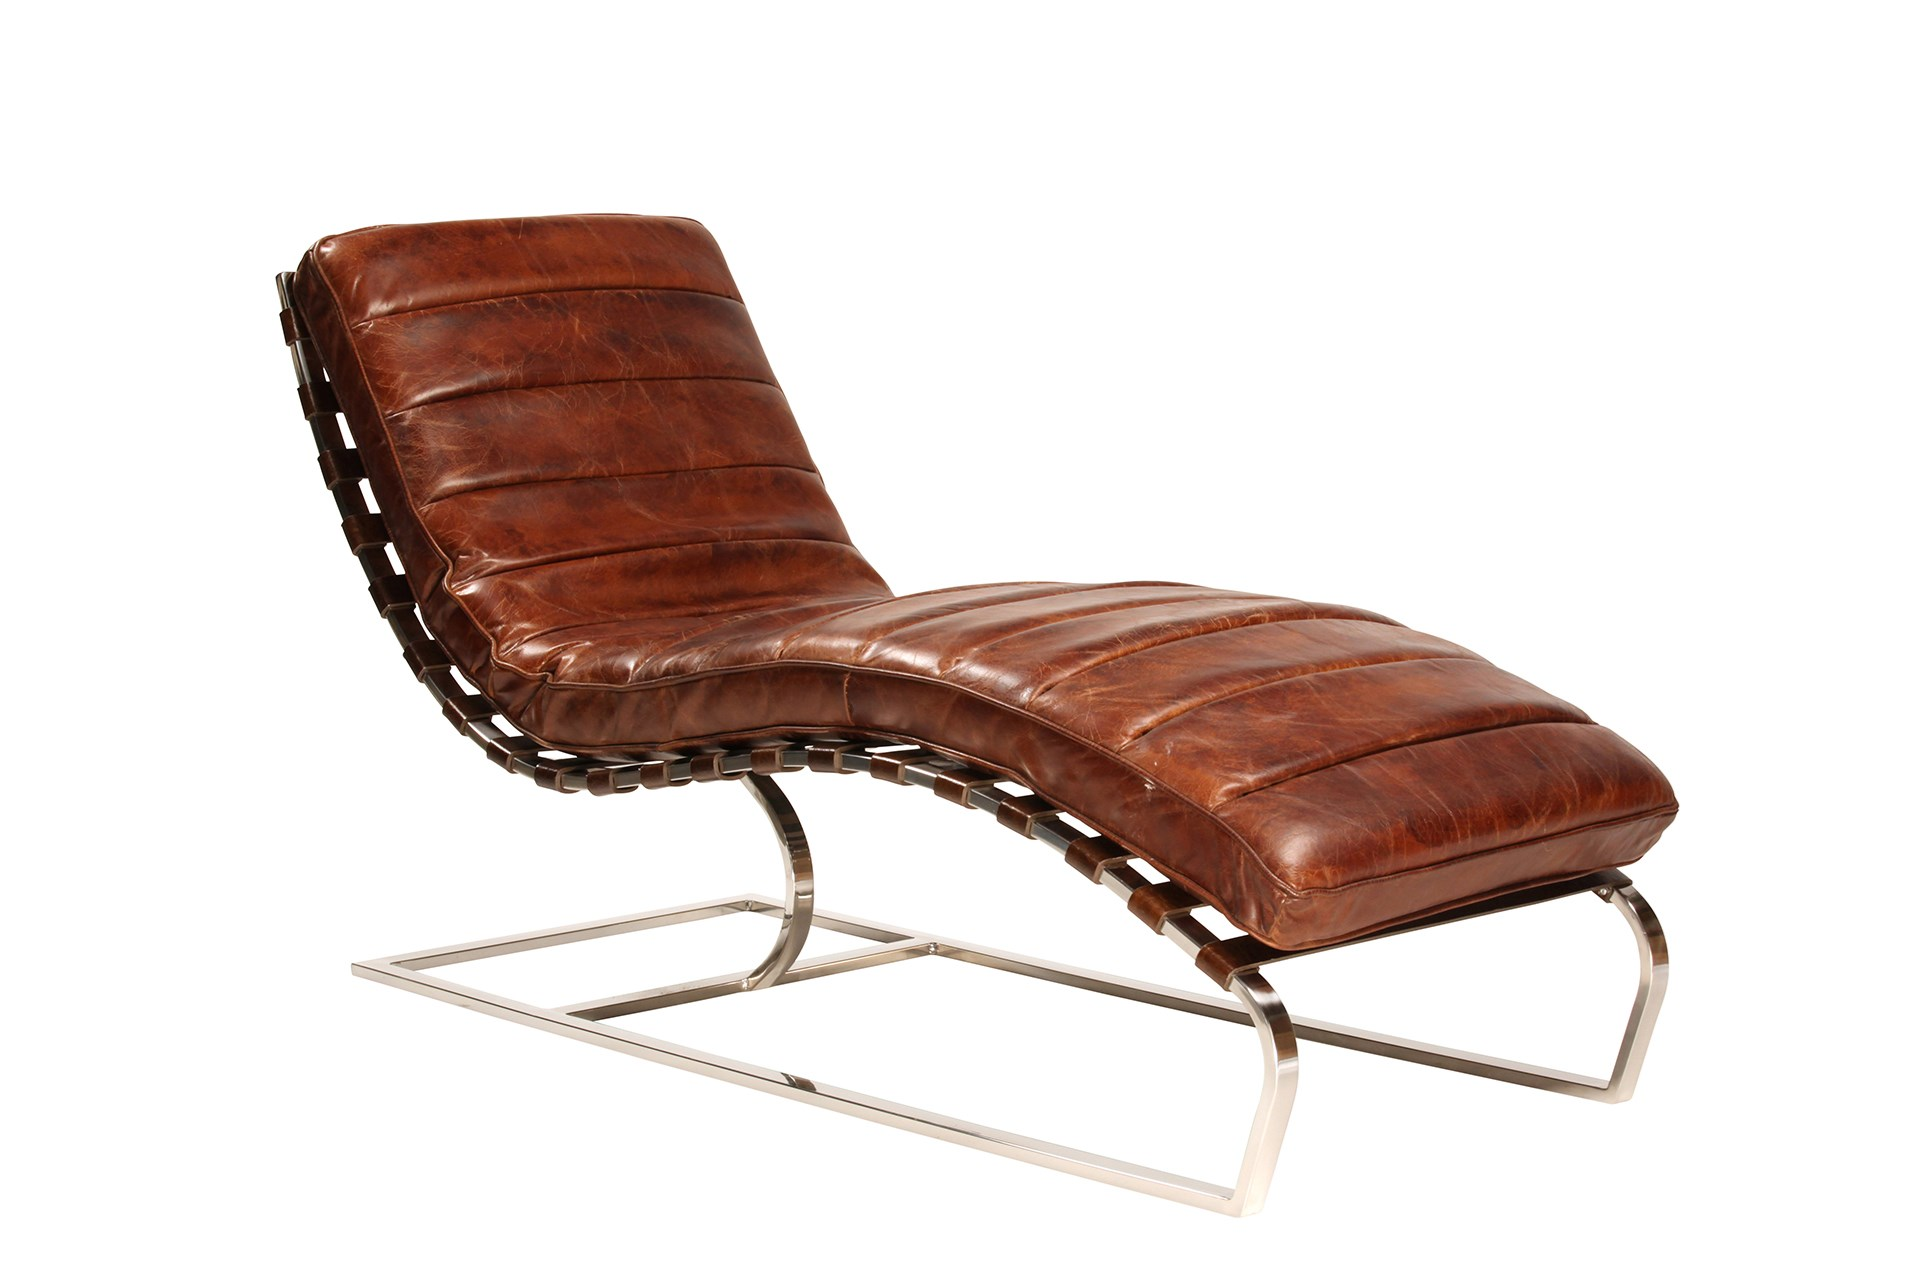 Cowhide Leather Chaise Qty 1 Has Been Successfully Added To Your Cart